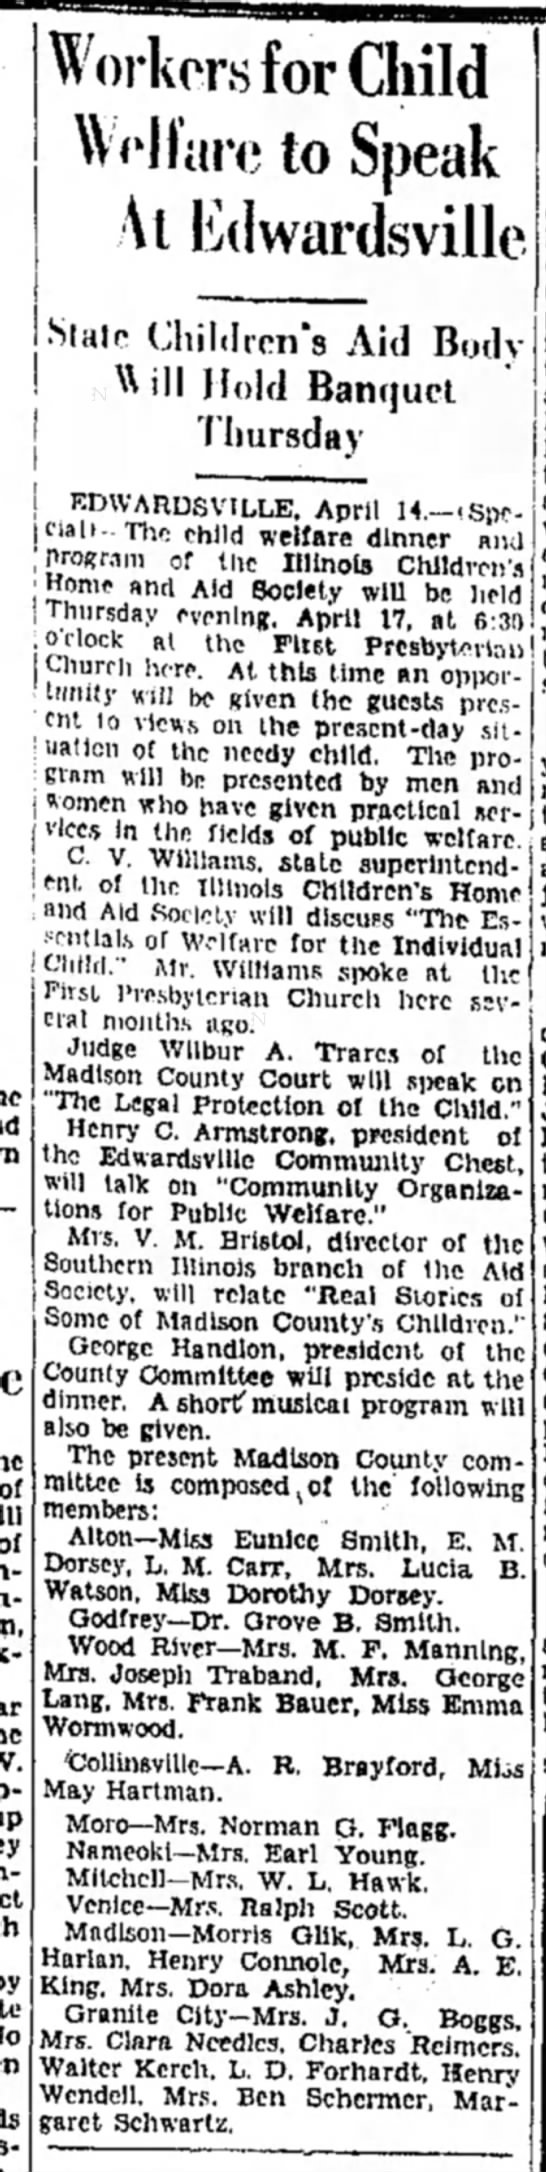 Mrs M F Manning - Workers for Child Welfare to Speak At Ed wards...